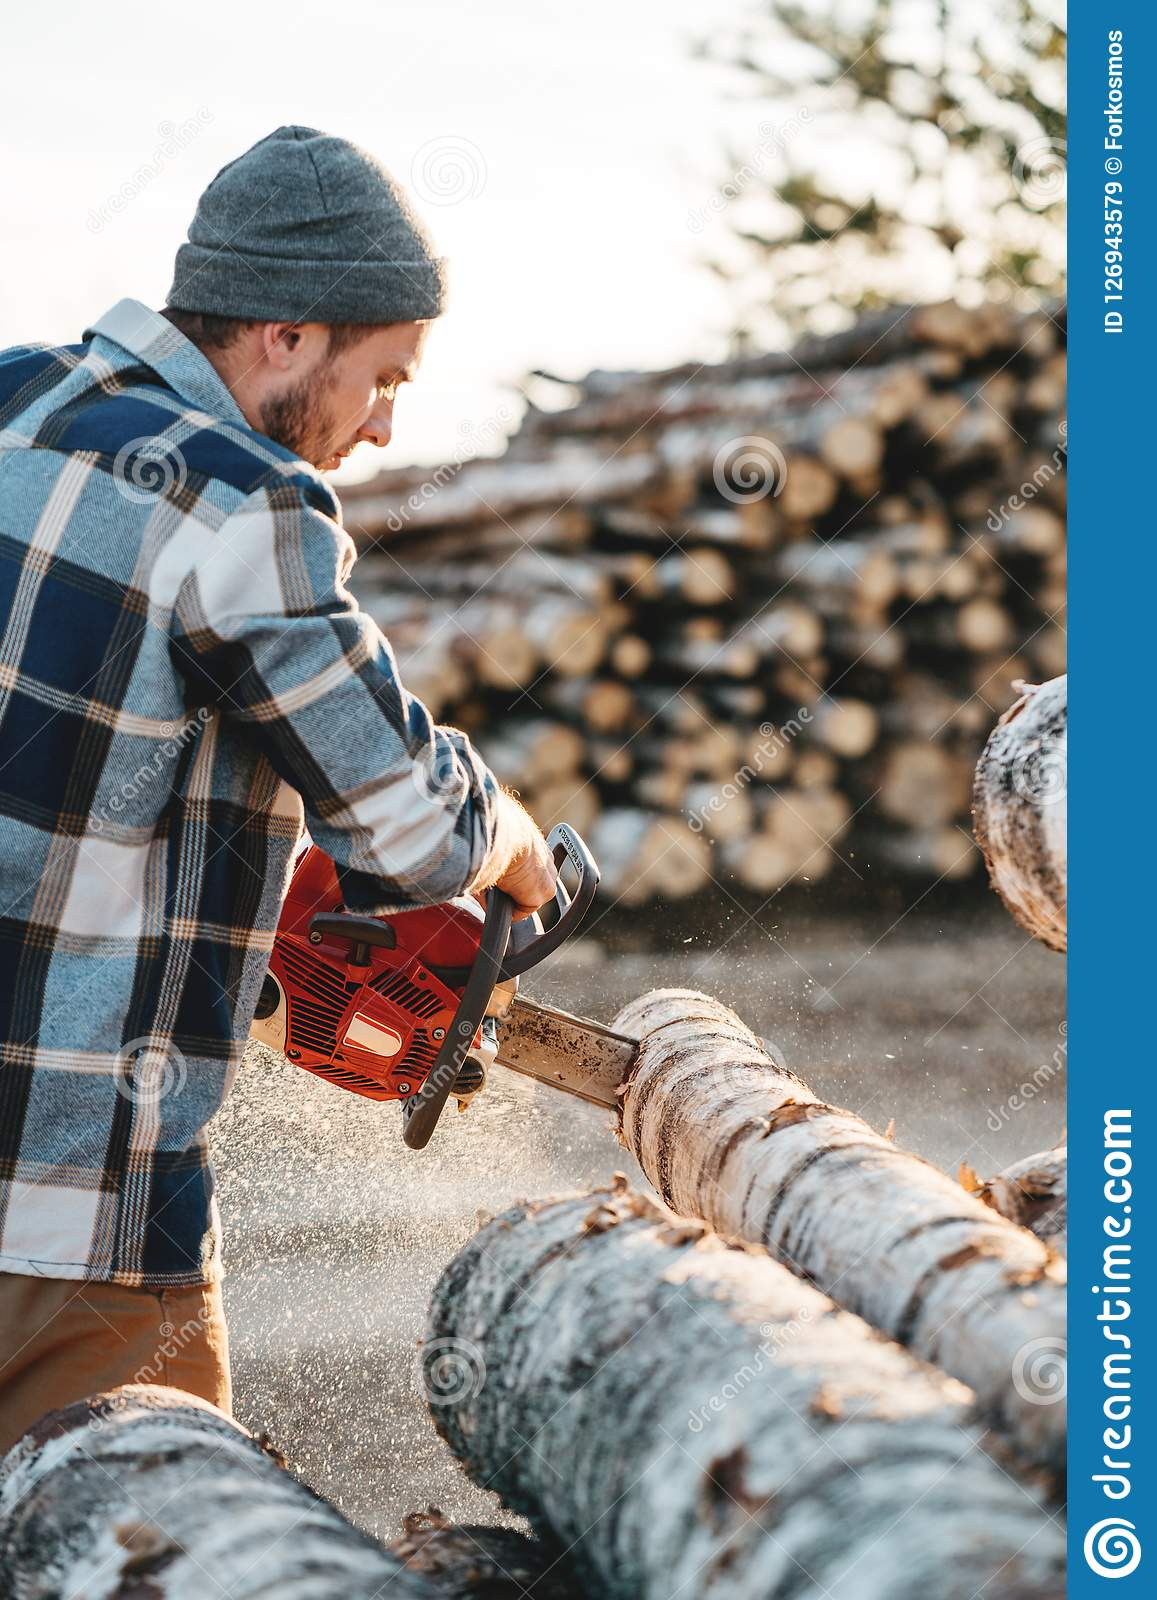 Bearded brutal lumberjack wearing plaid shirt sawing tree with chainsaw for work on sawmill. Wooden sawdust fly apart